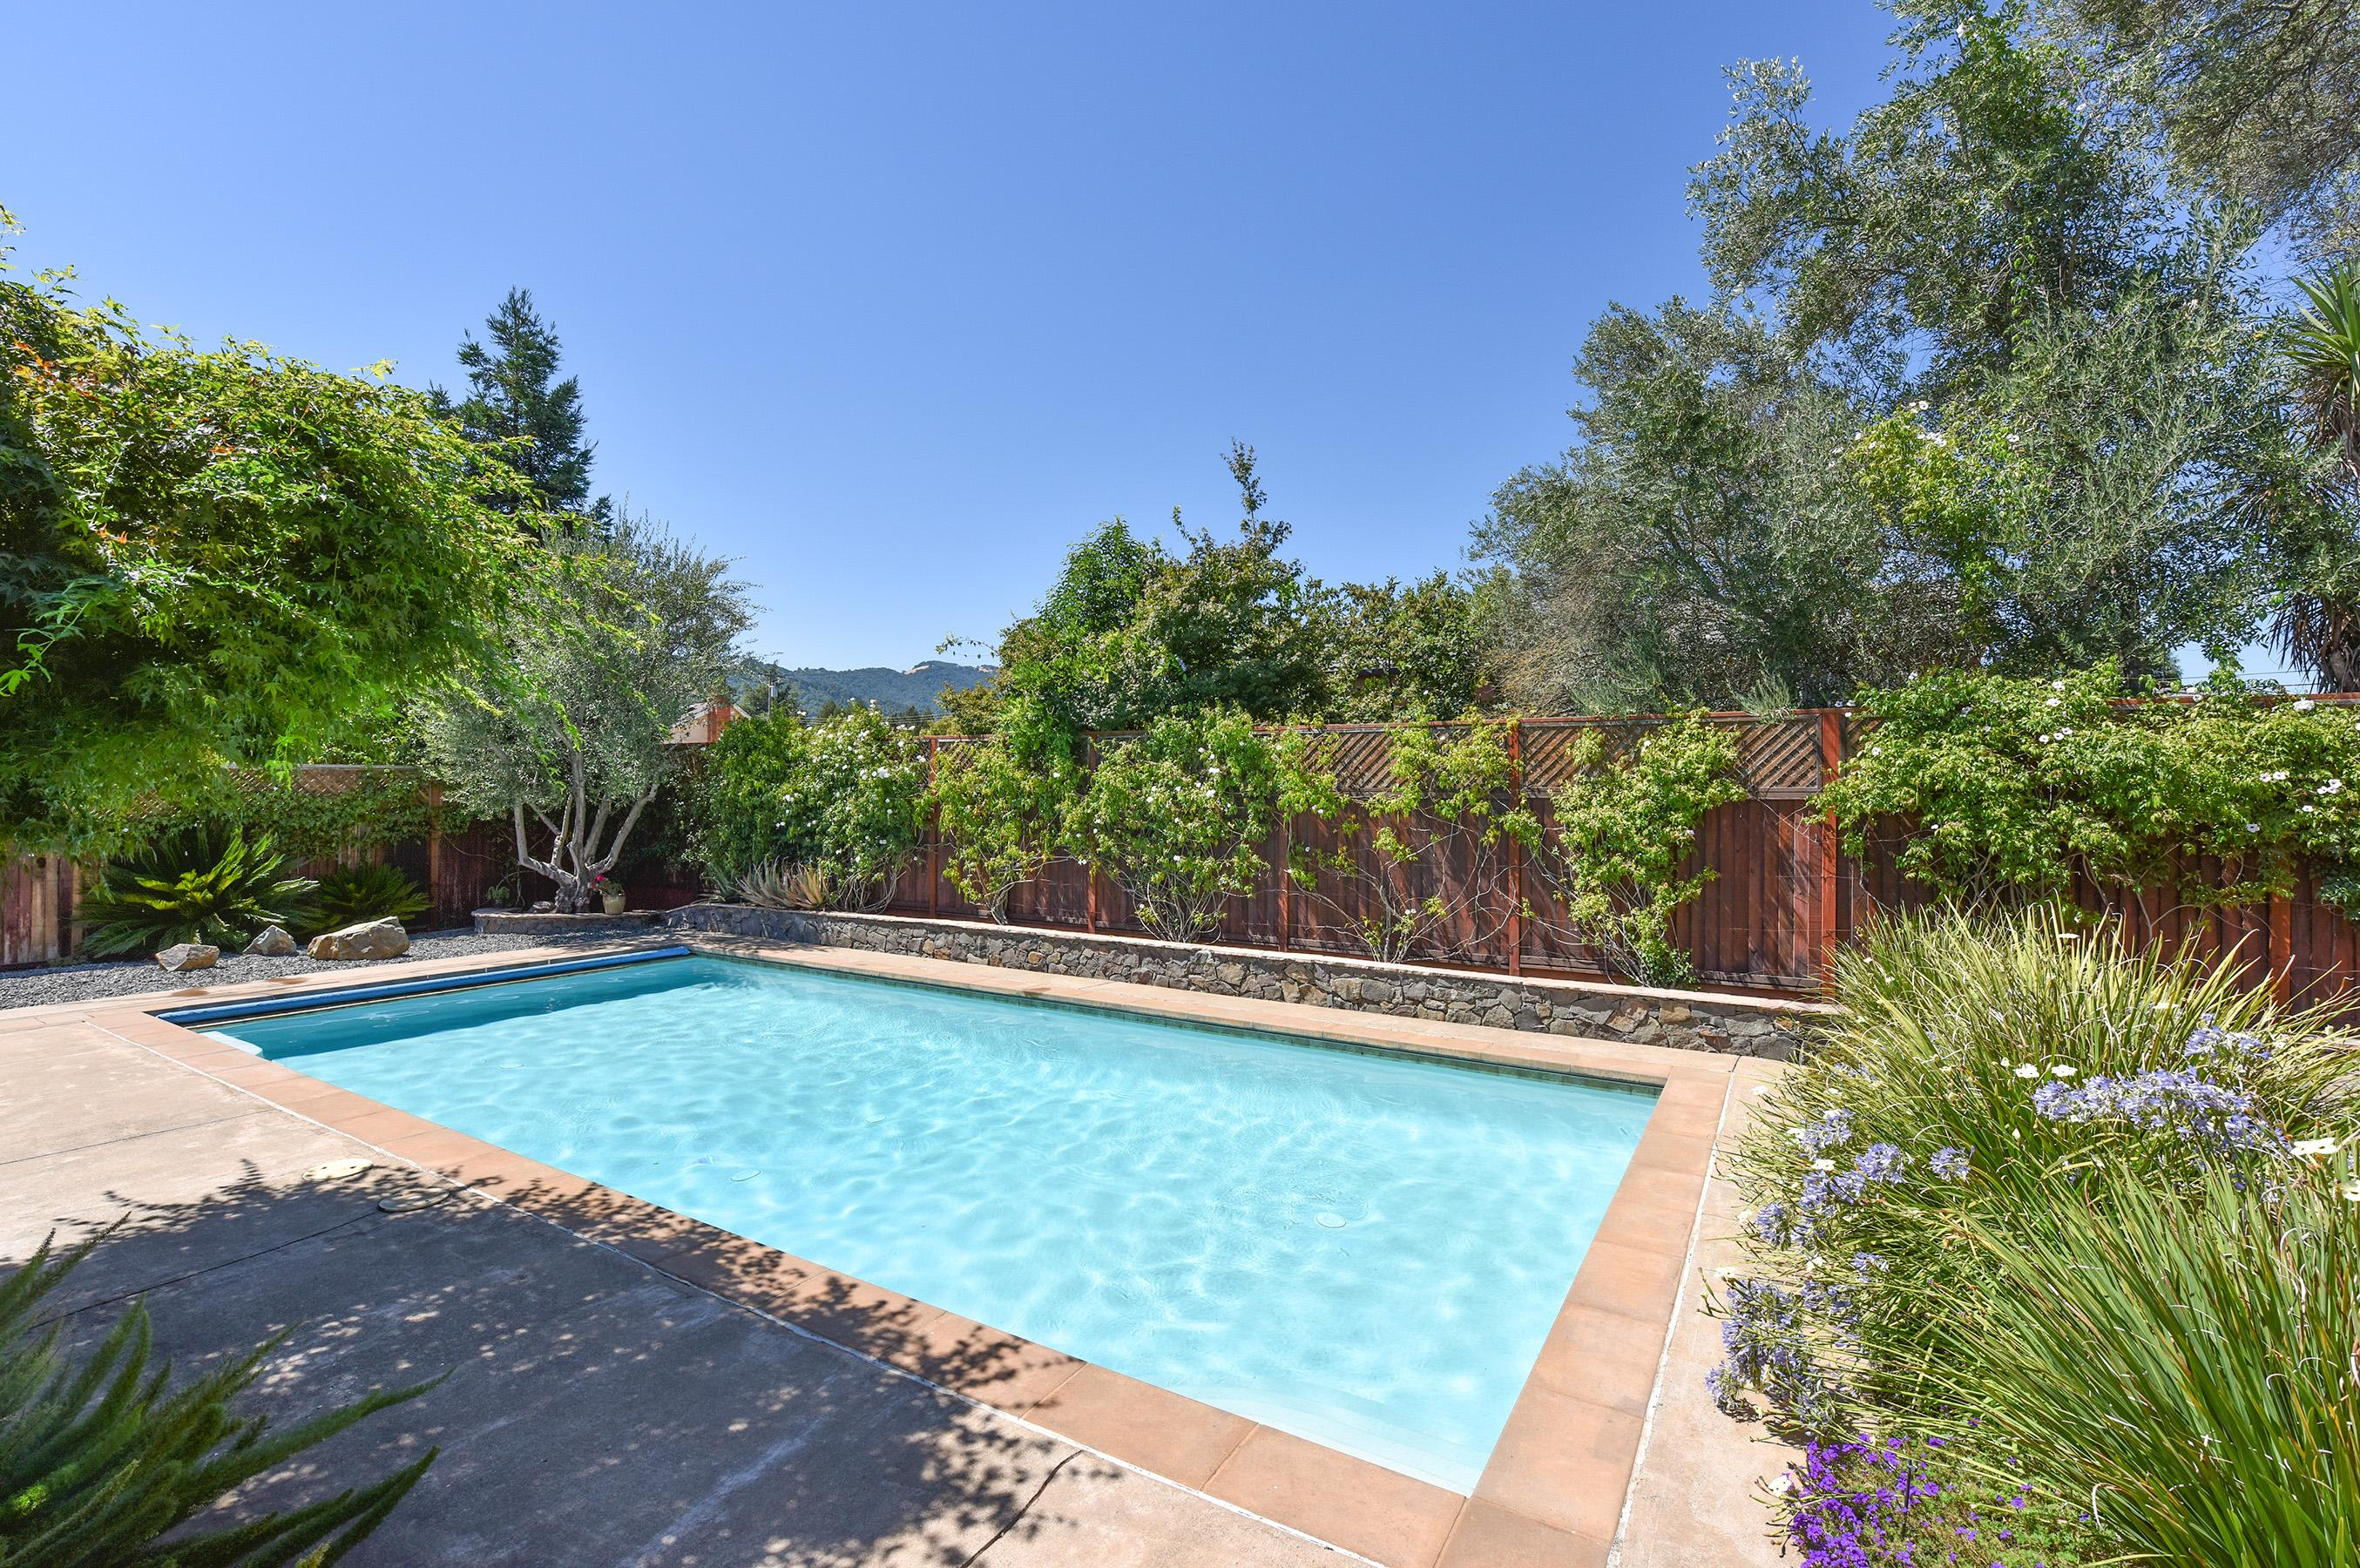 Welcome to gorgeous Sonoma! Sparkling pool for a refreshing afternoon dip, surrounded by lush landscaping and a view of the rolling California hillsides.